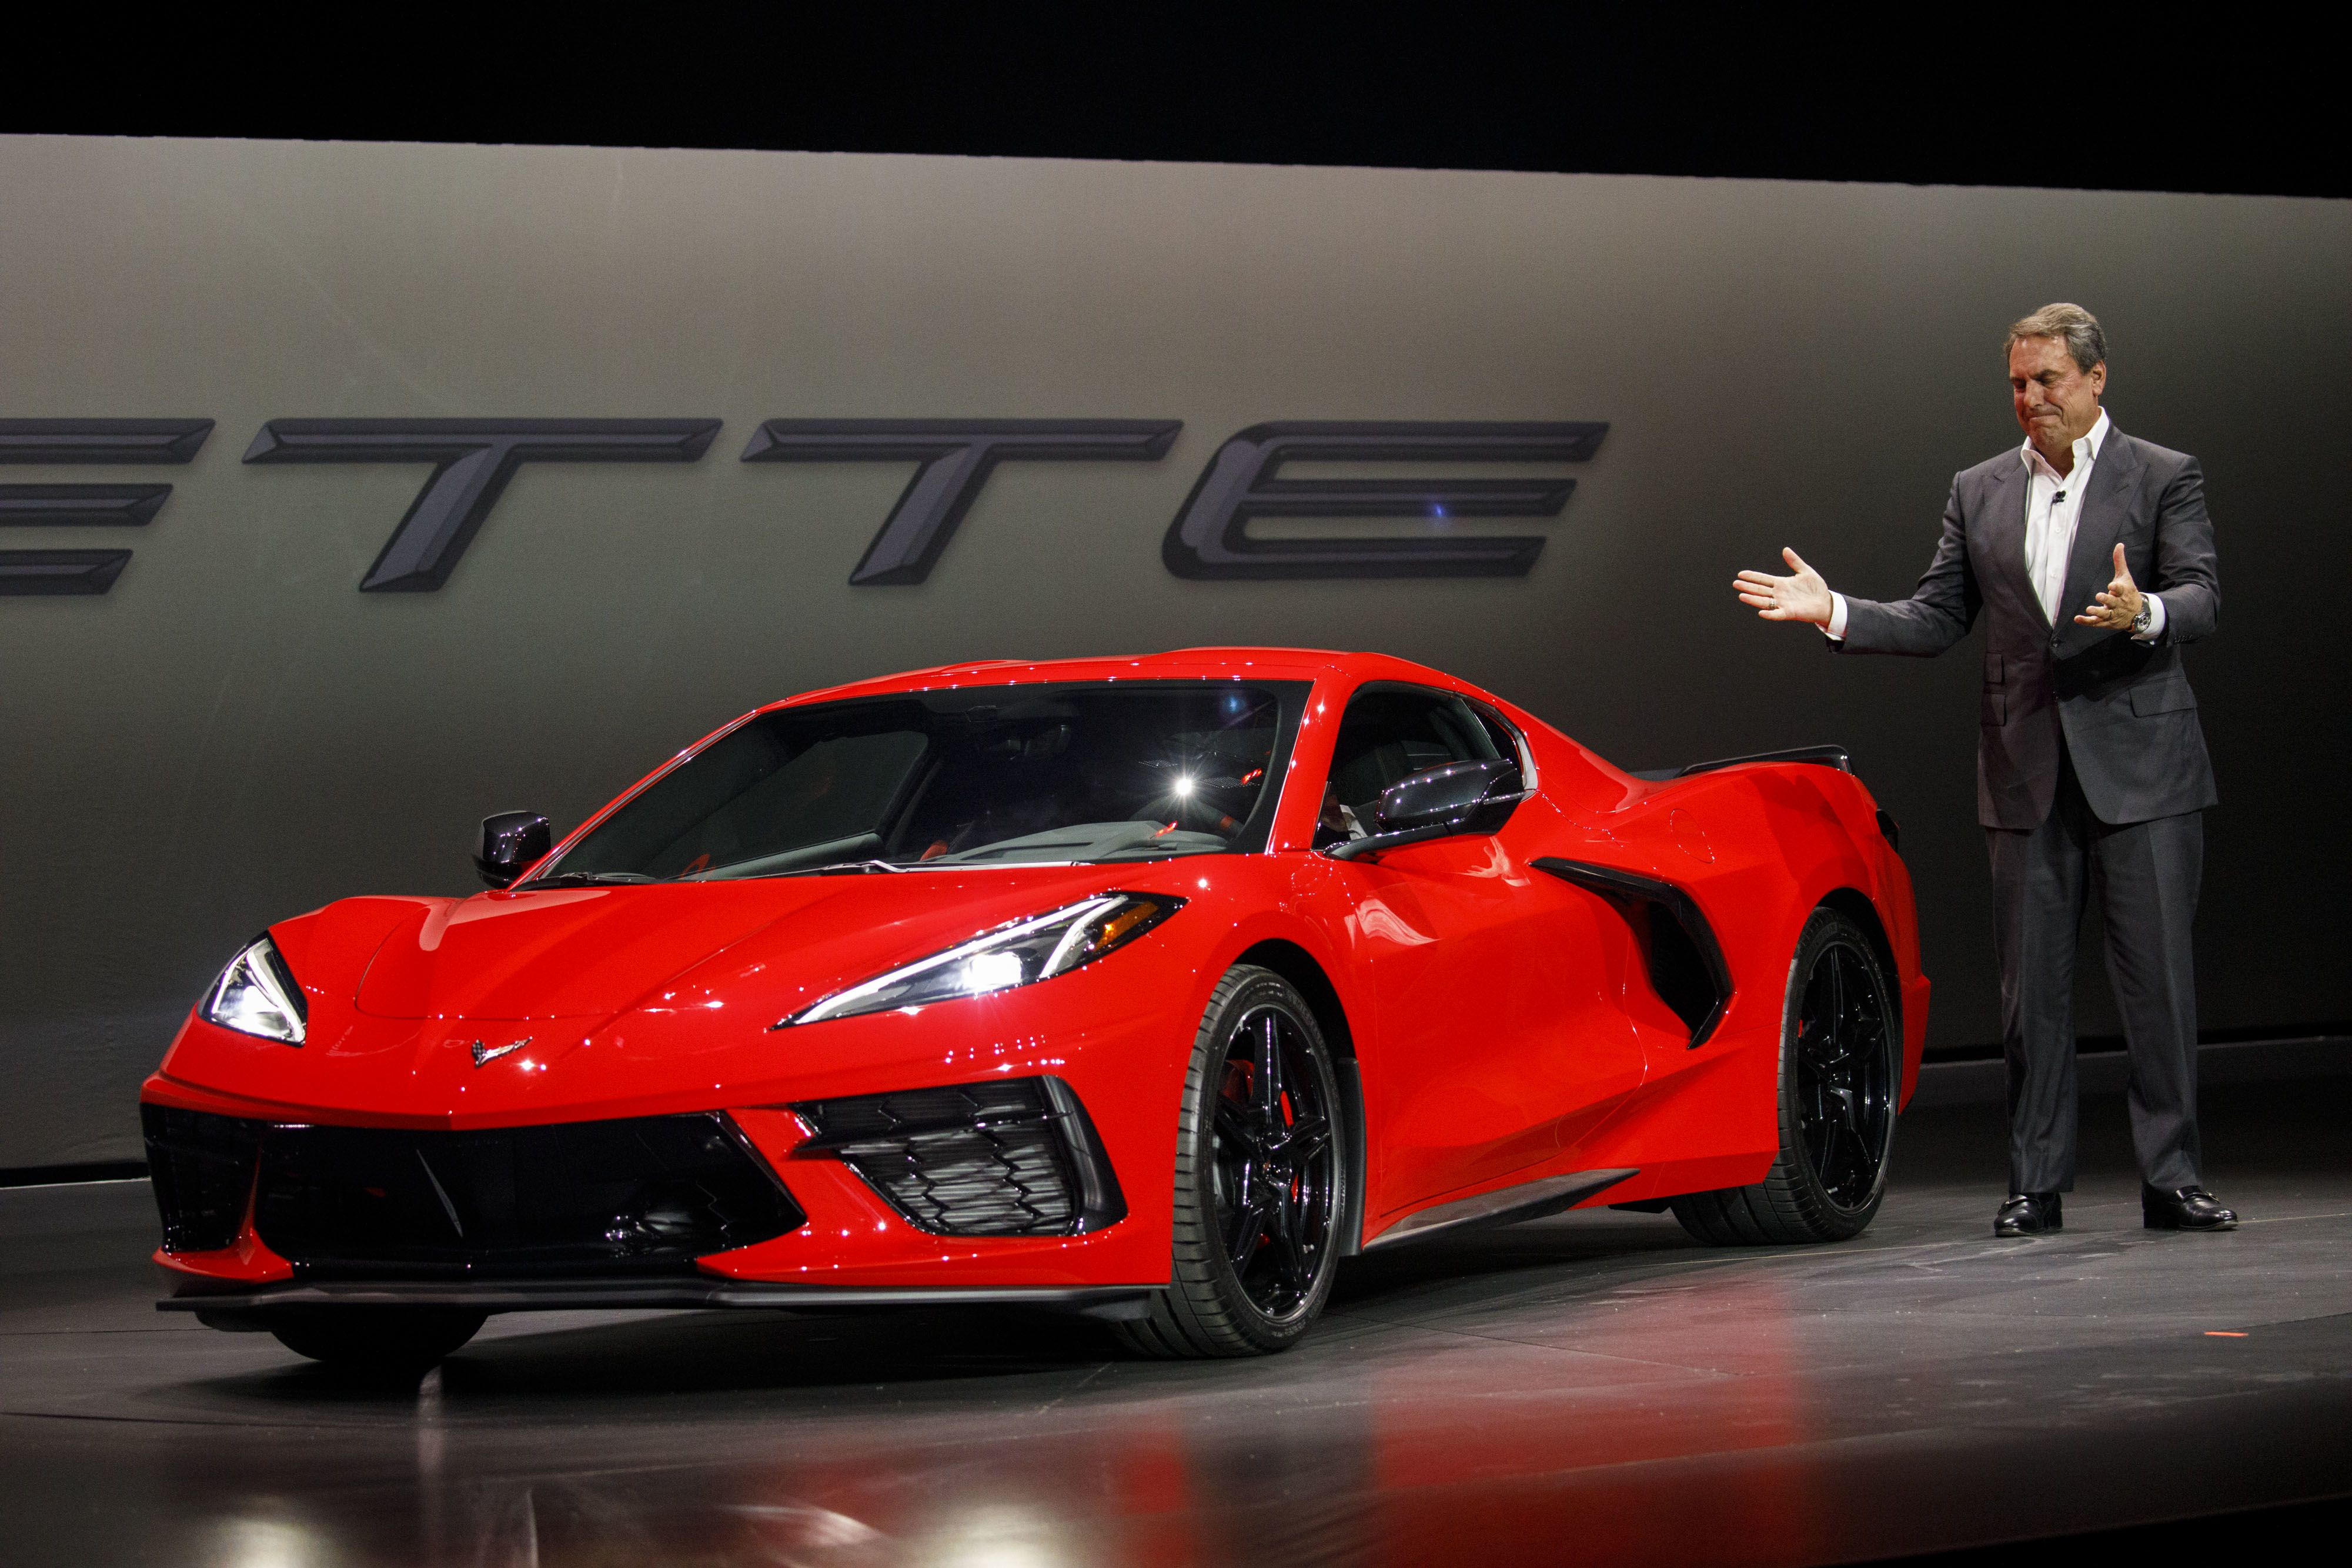 Chevy redefines an American icon with the $60,000 2020 Corvette Stingray